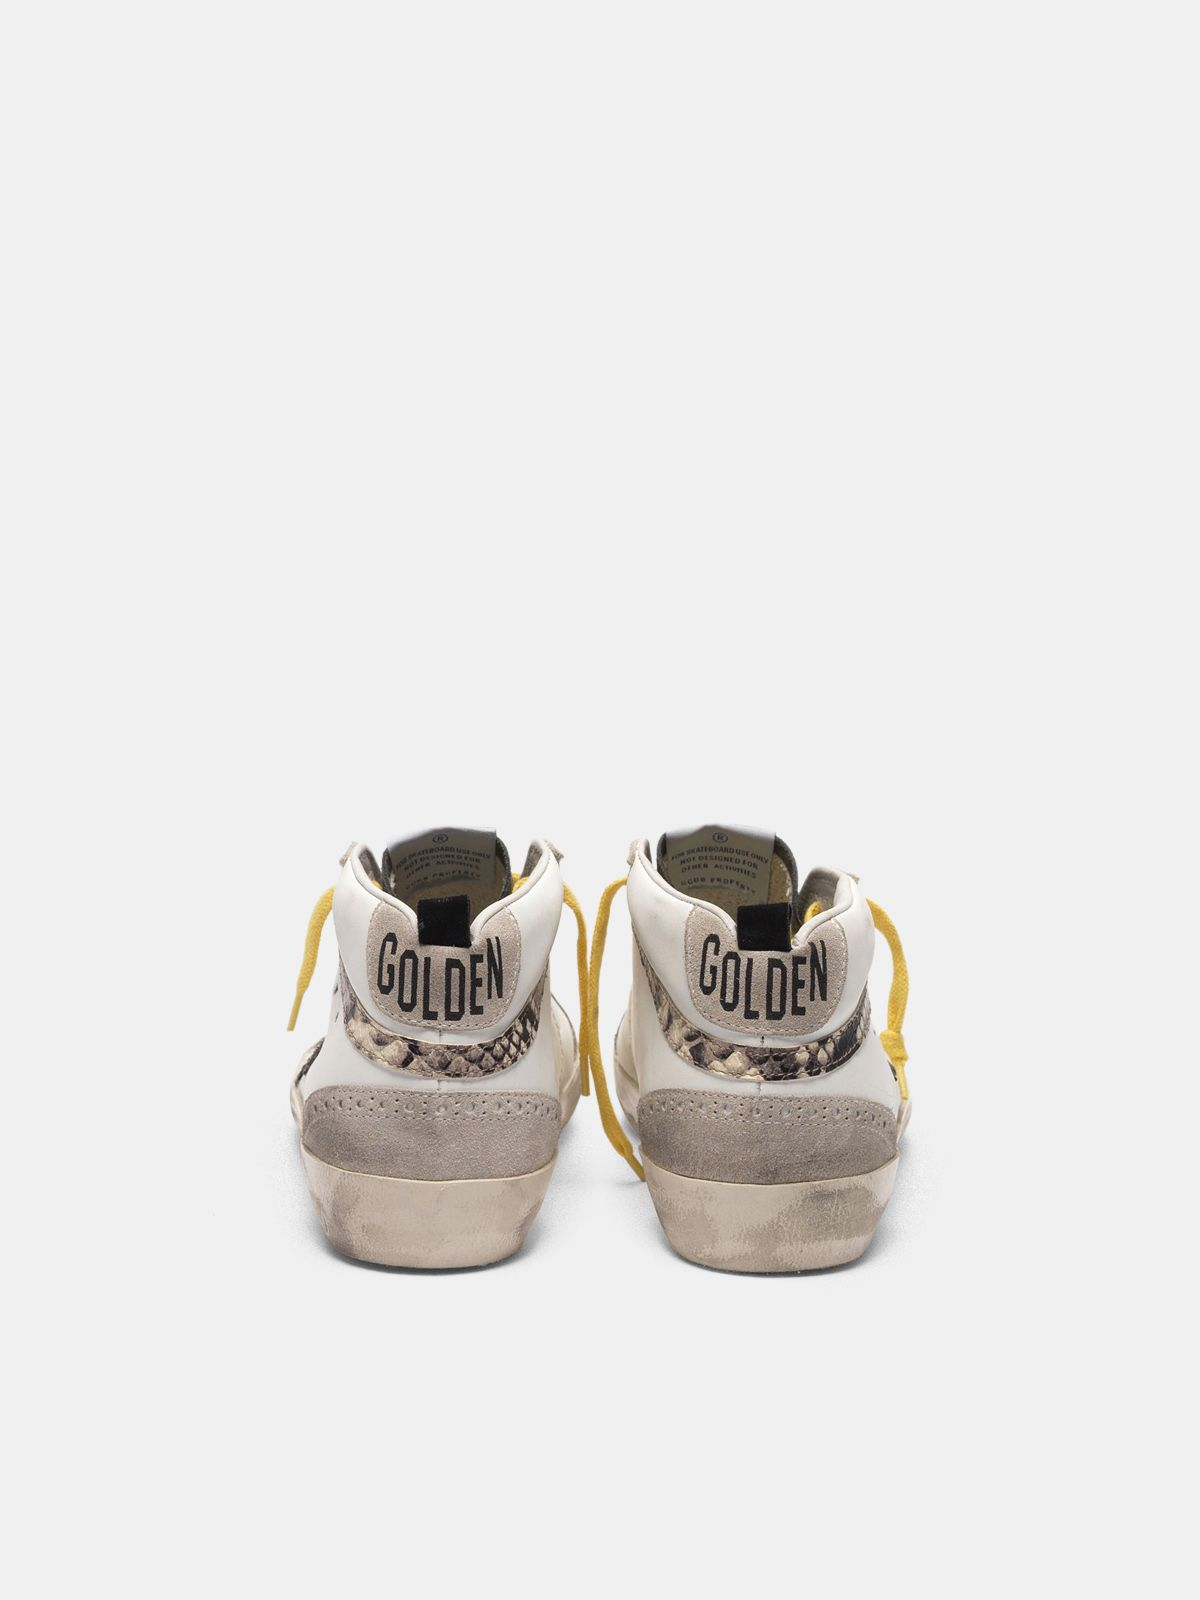 Golden Goose - Mid-Star sneakers in leather with snake-print insert in